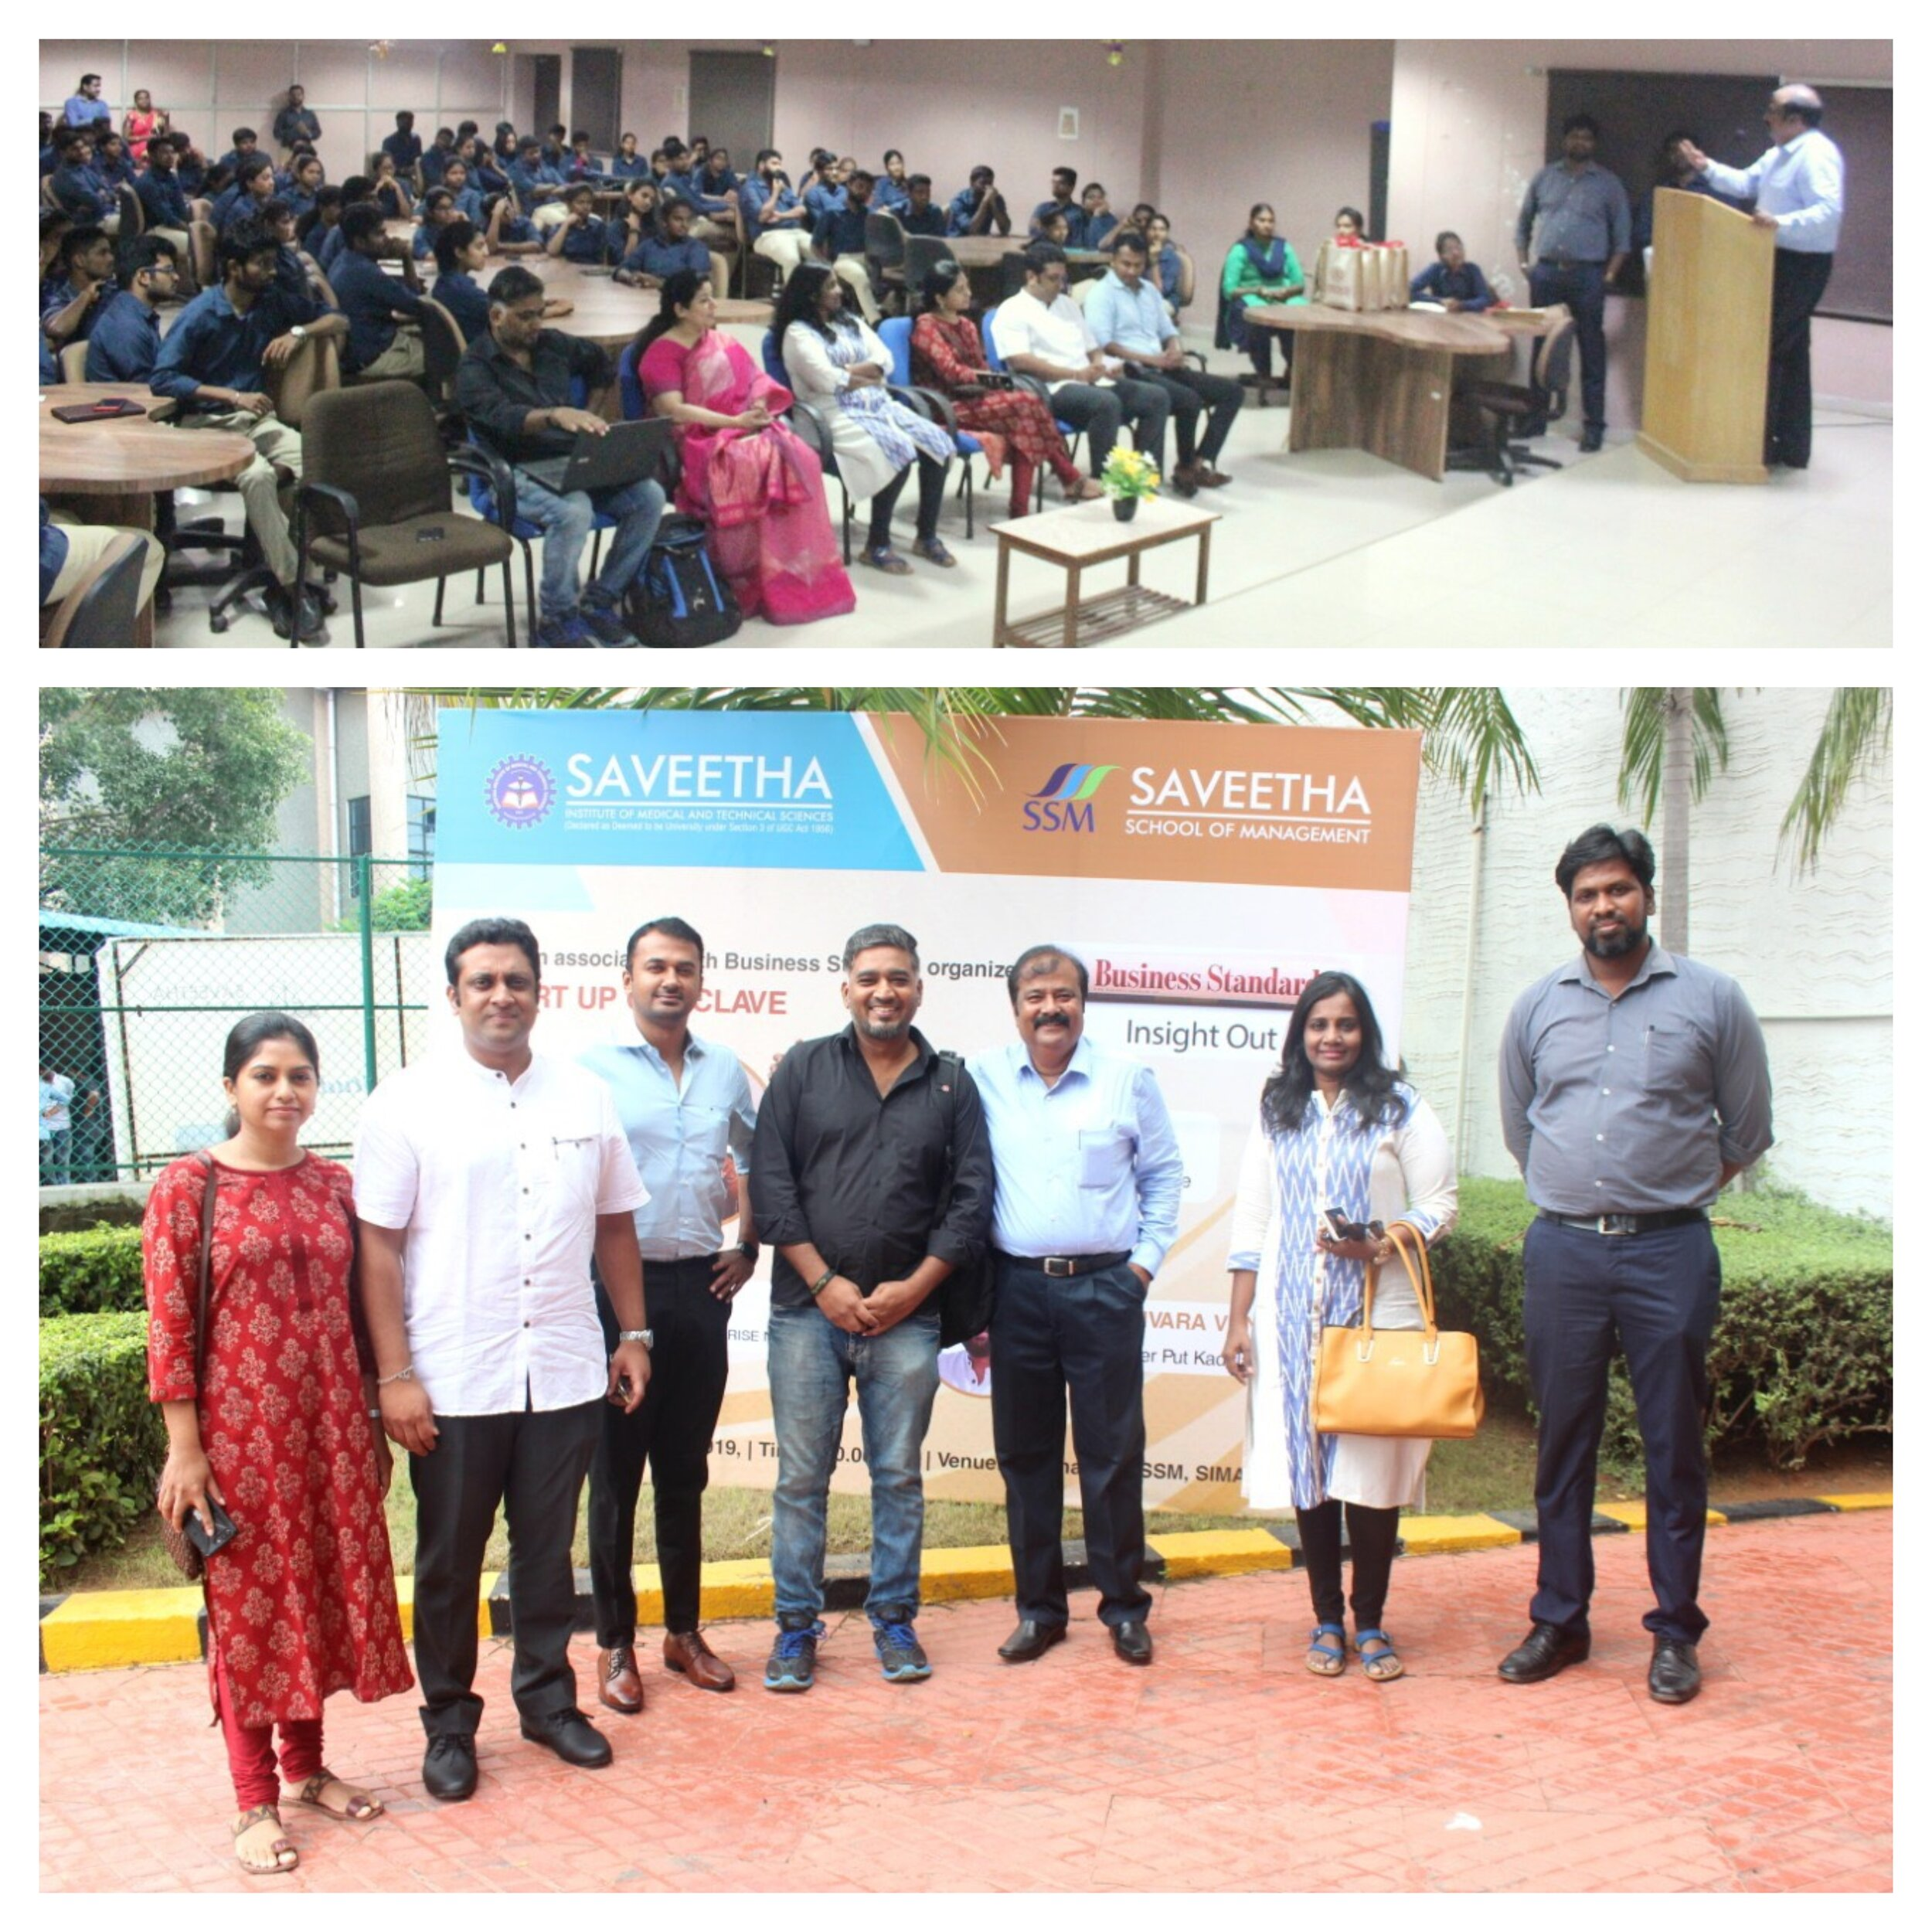 SSM conducted start up conclave on 18.10.2019..It was a great experience for our students and founders of start ups like Ms. Karhambari, Wedo, Mr. Sakthivel, Surprise Ninja and Mr. Harishvara, Put Kadalai gave their valuable insights to our students.